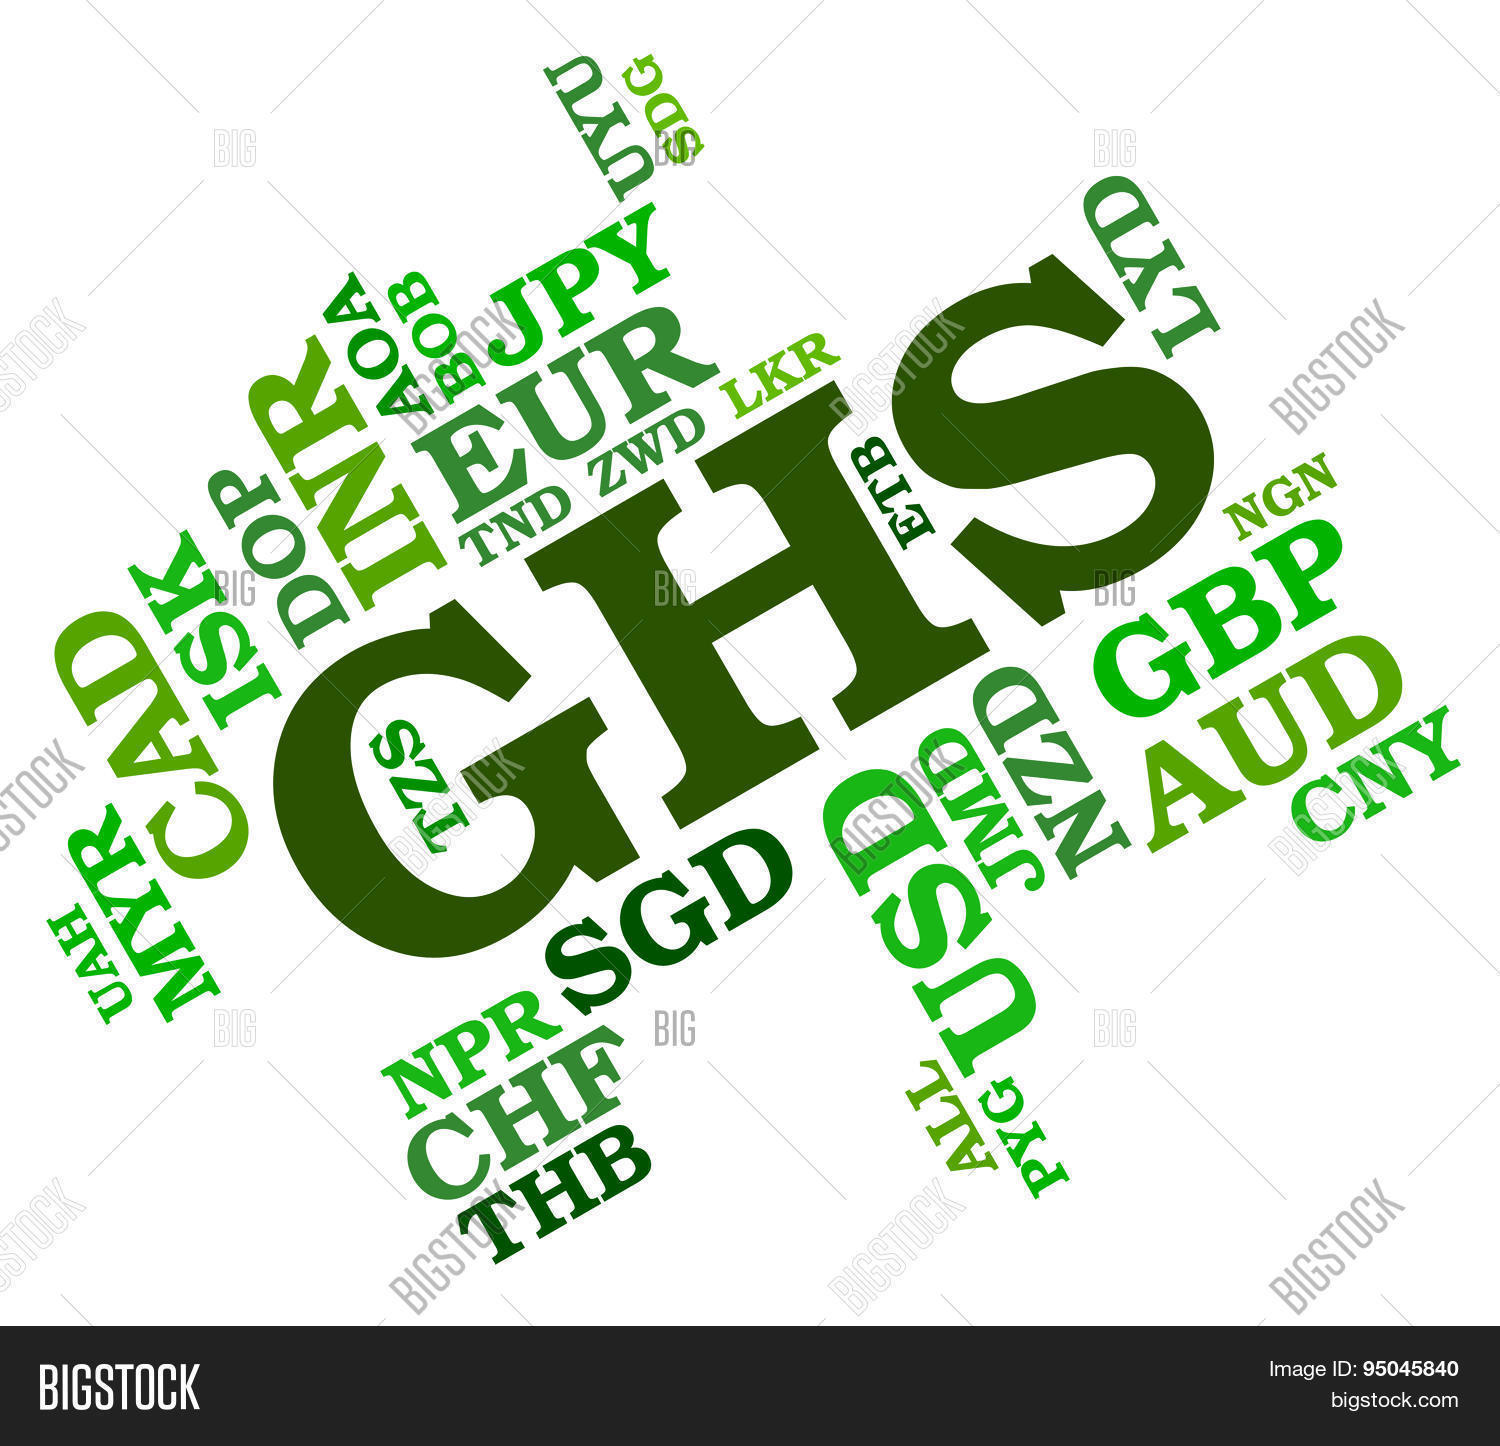 Ghs Currency Means Image Photo Free Trial Bigstock